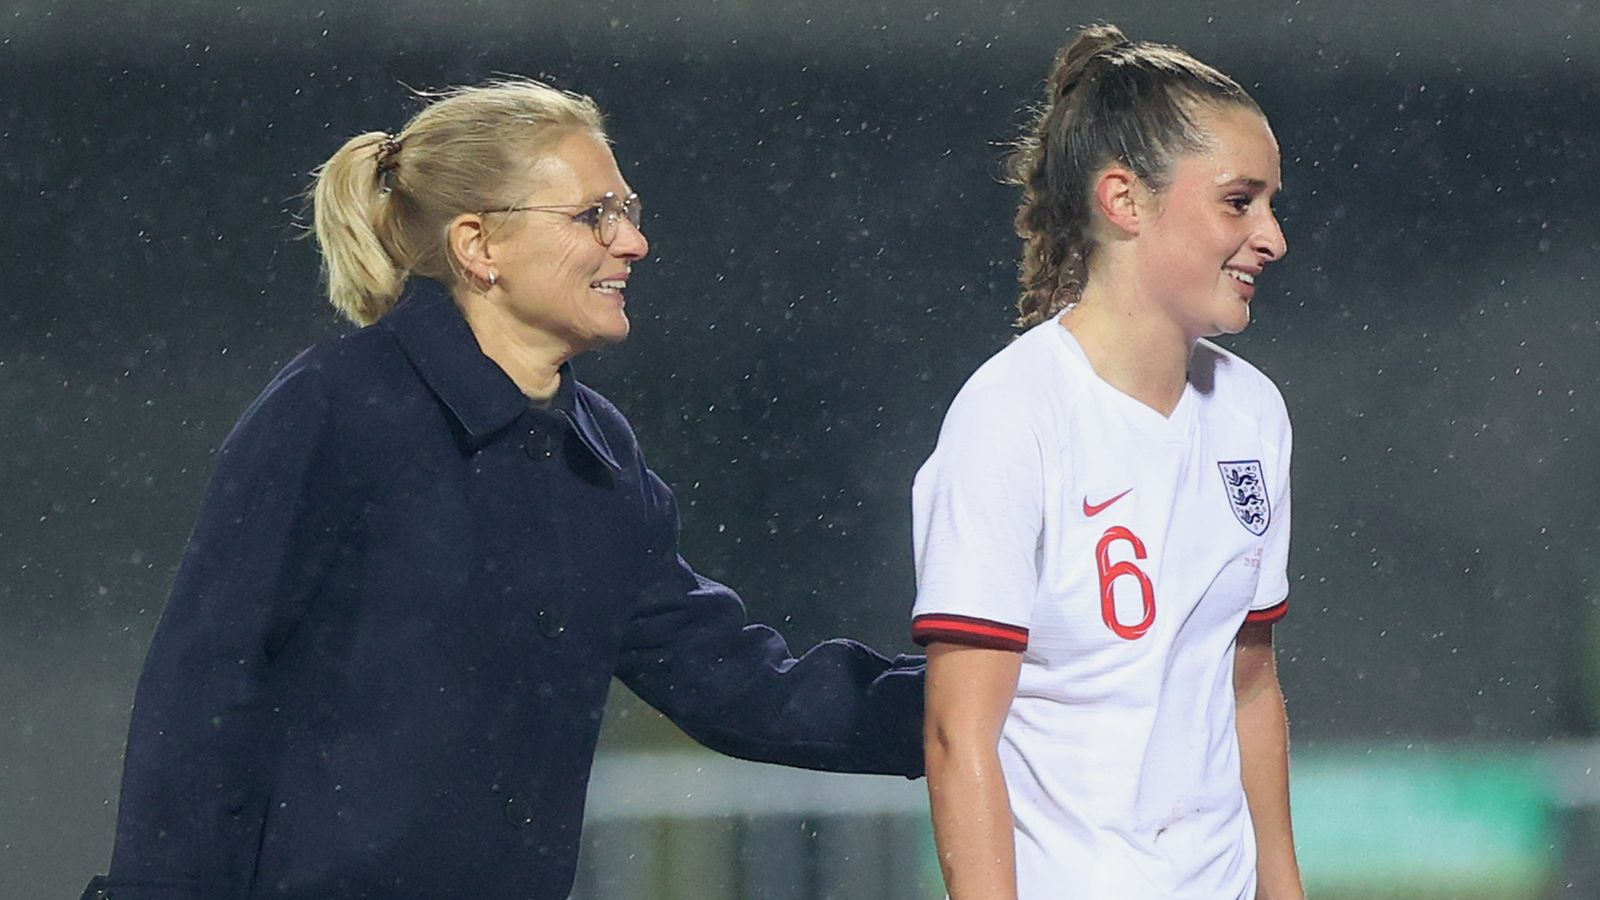 England Women: Ella Toone's 'talent is obvious', says Sarina Wiegman after 10-0 win in Latvia